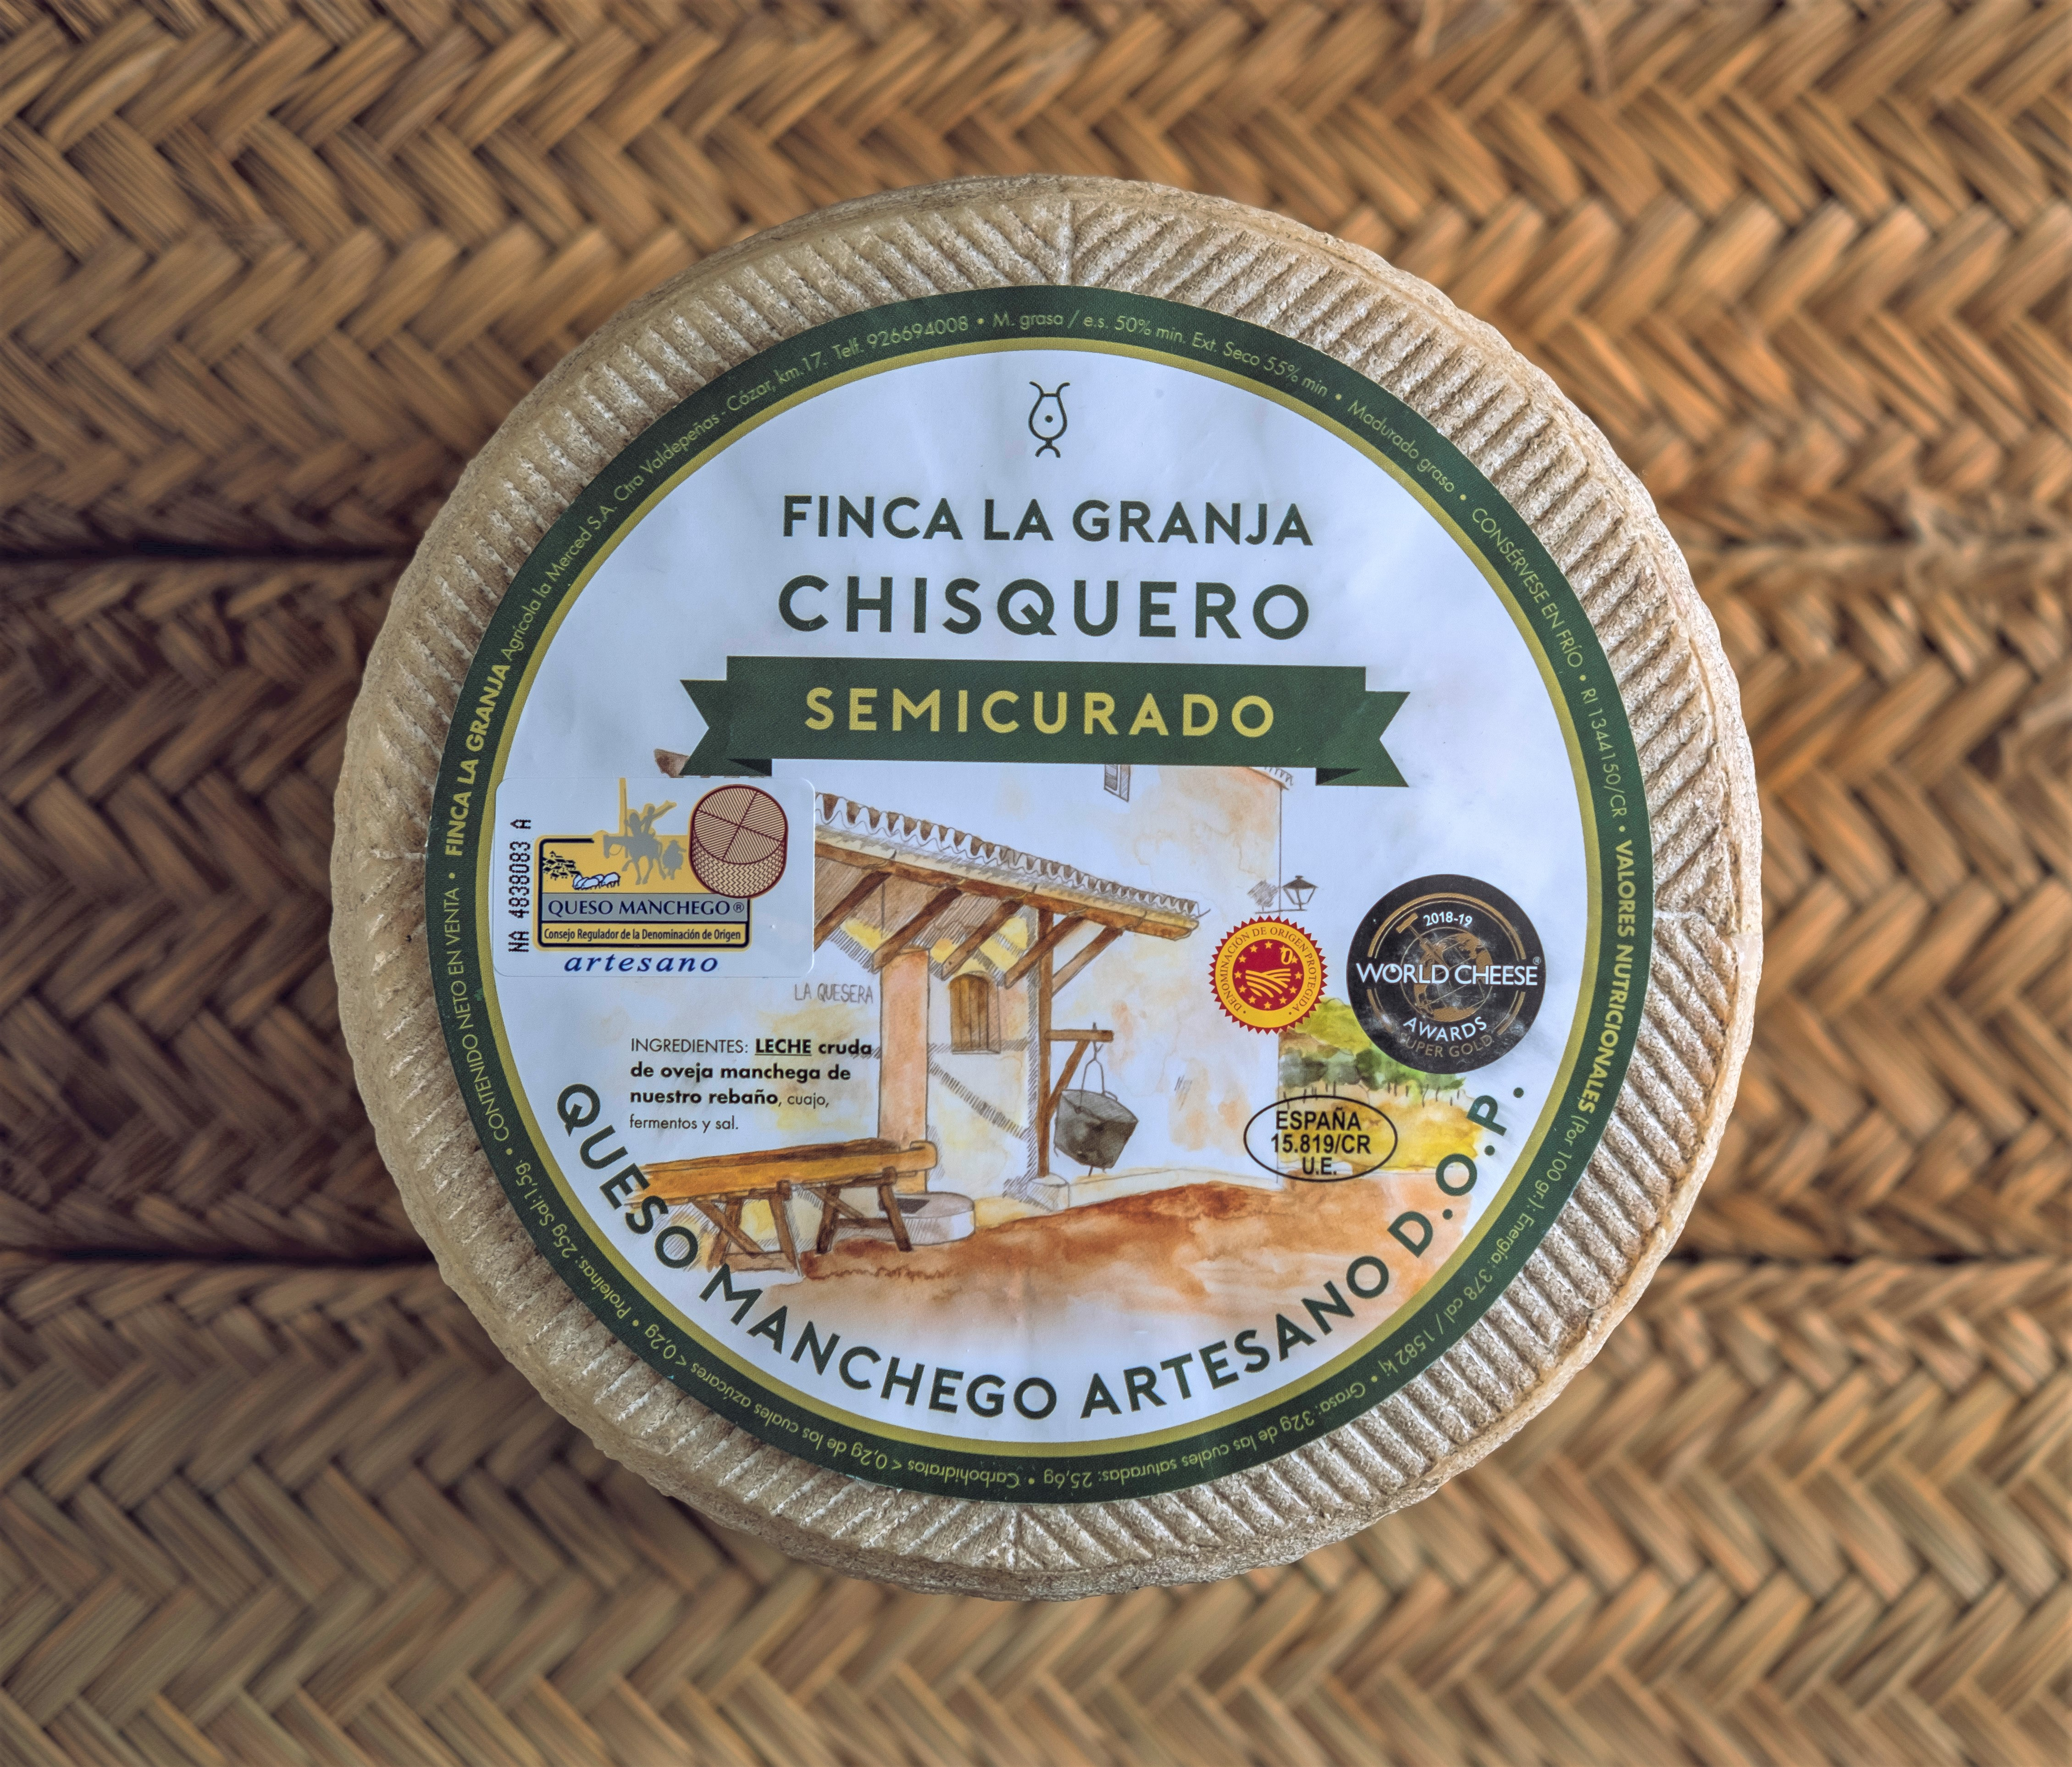 Fromage MANCHEGO - Affinage 4 mois